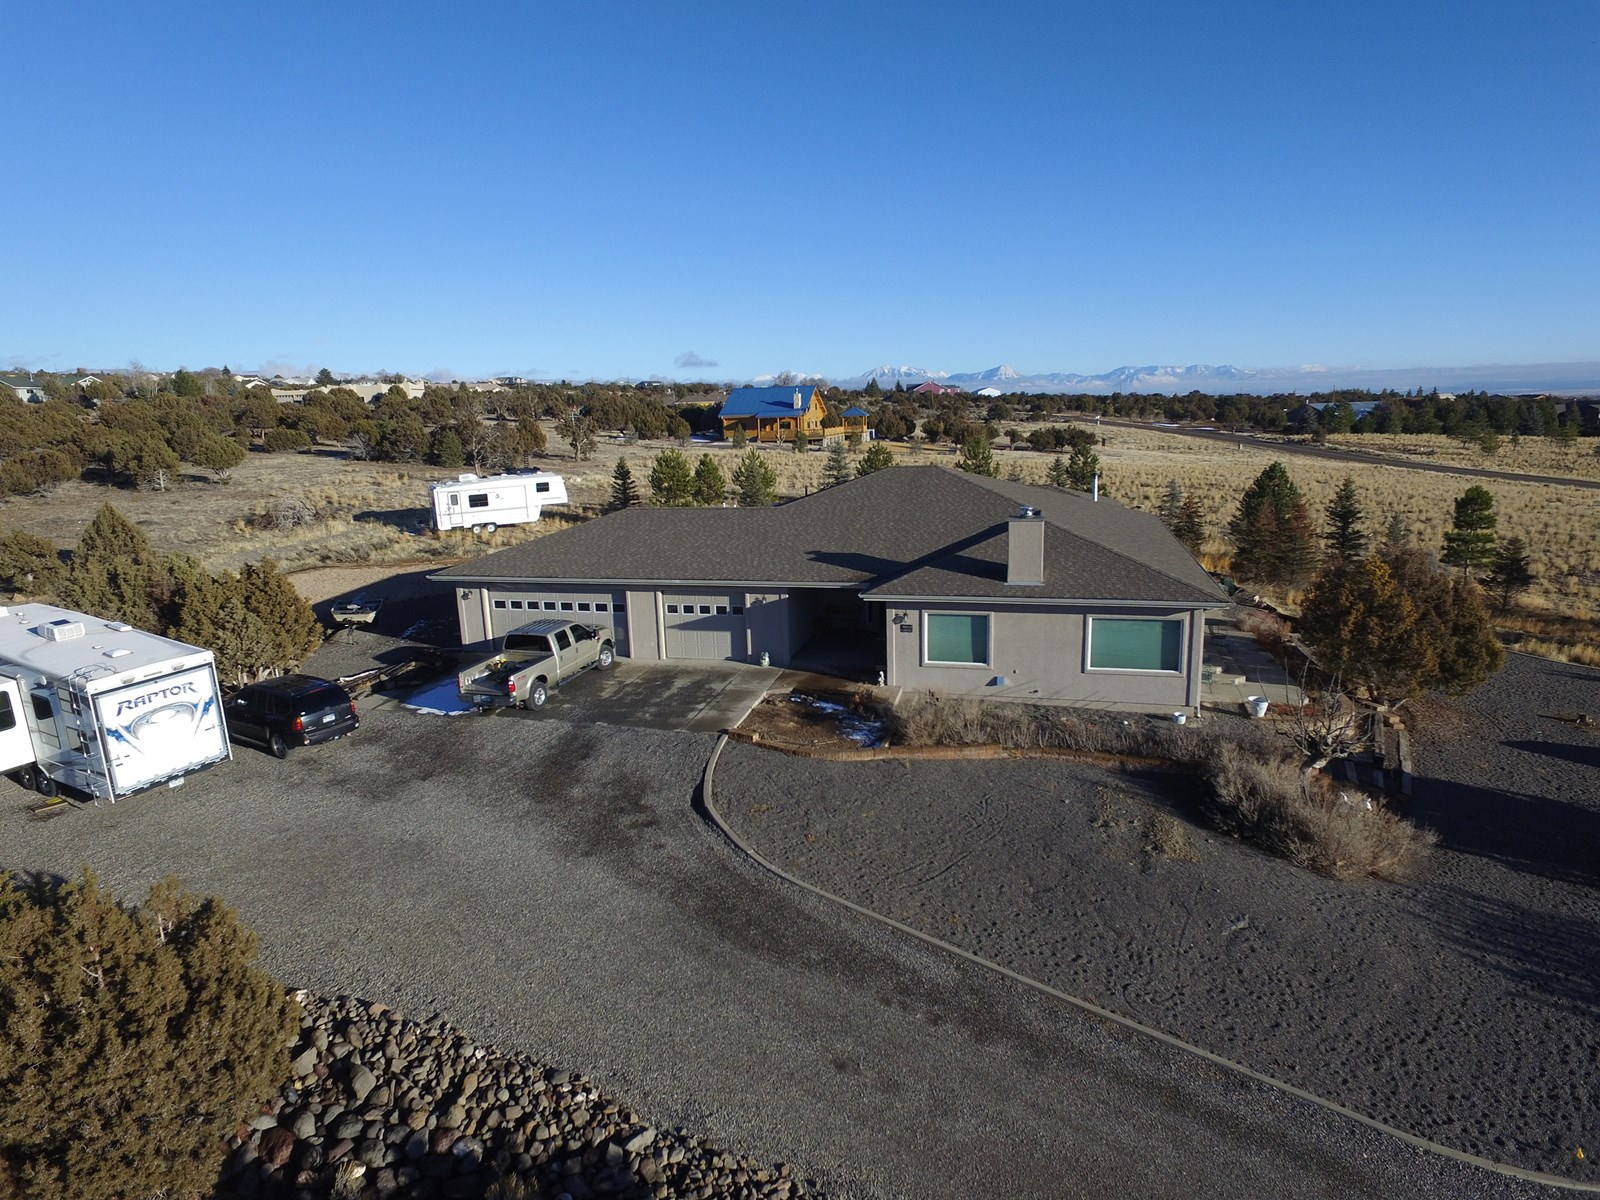 Home with acreage near Cedaredge, CO has stunning views